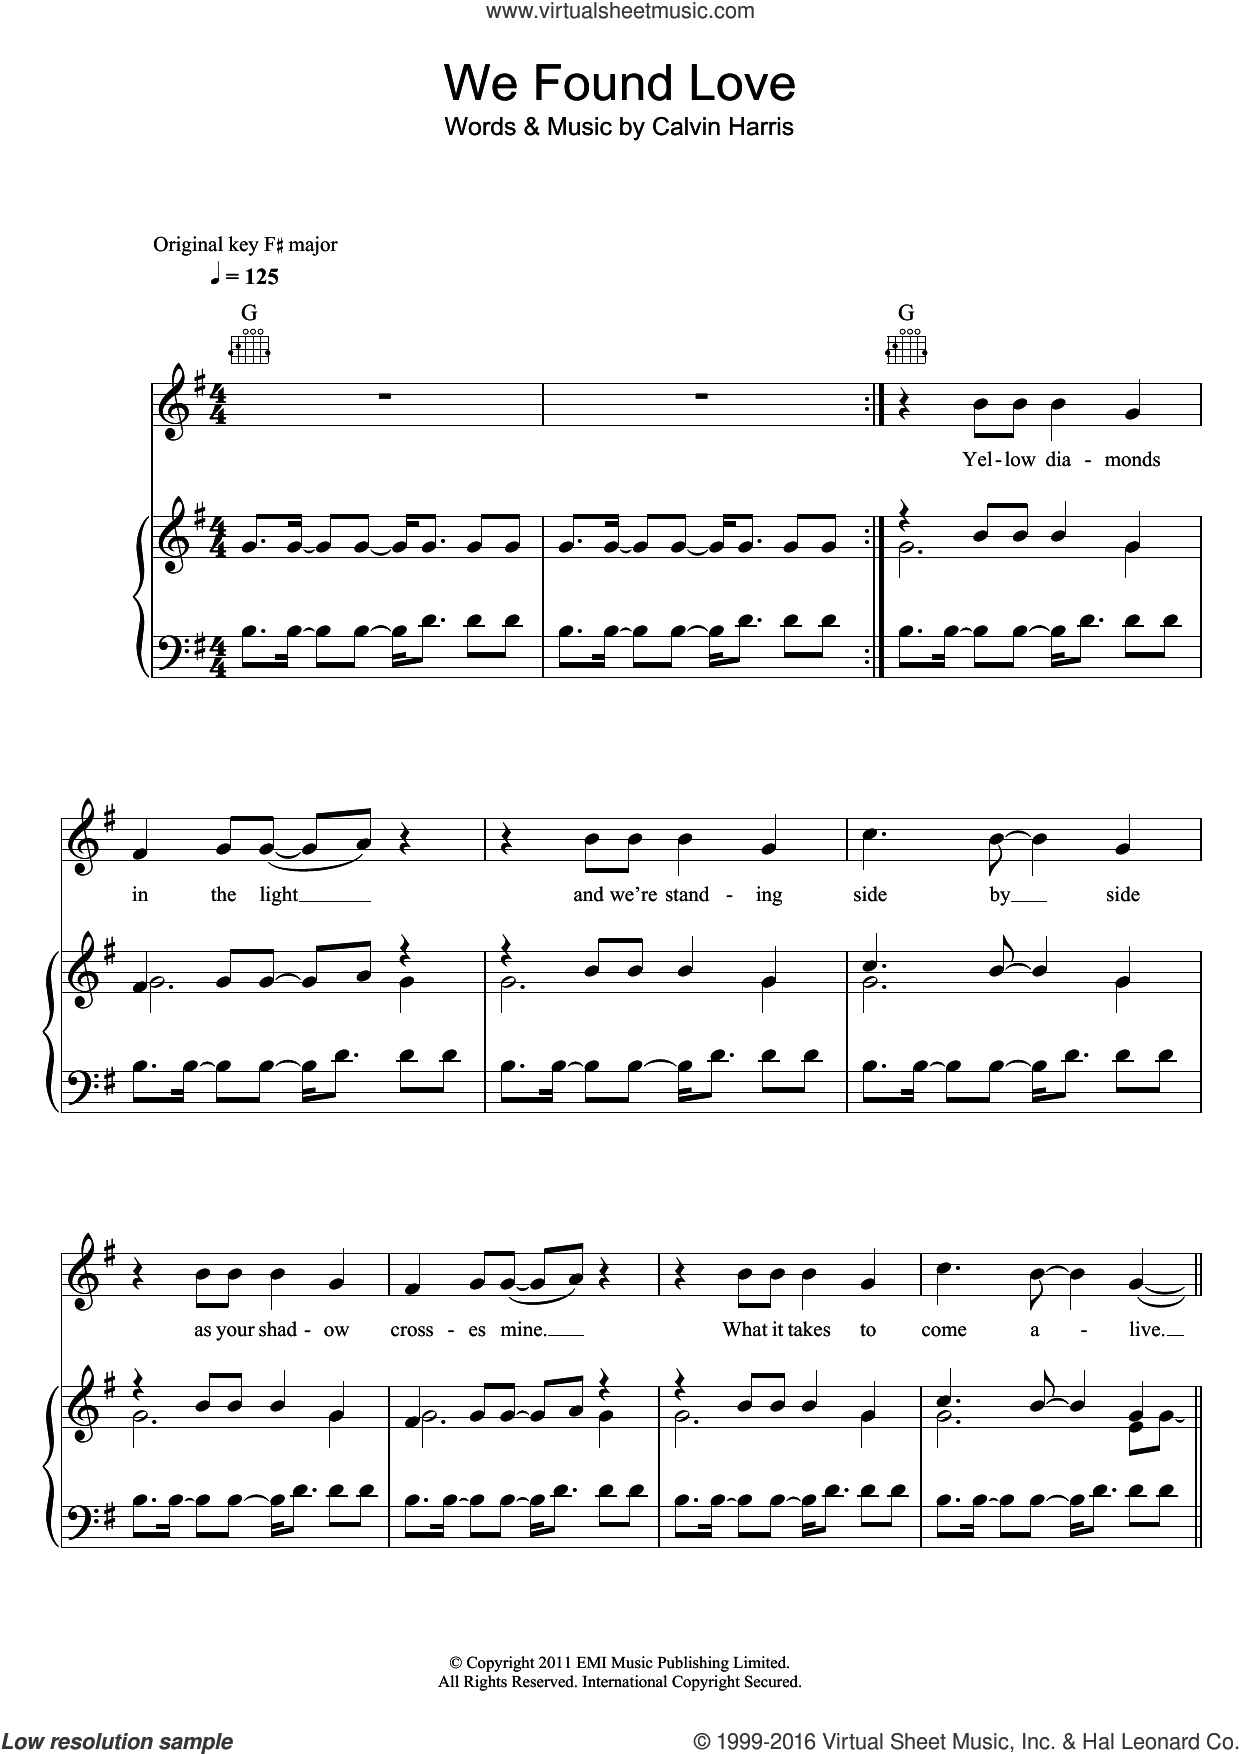 We Found Love (featuring Calvin Harris) sheet music for voice, piano or guitar by Rihanna and Calvin Harris, intermediate skill level